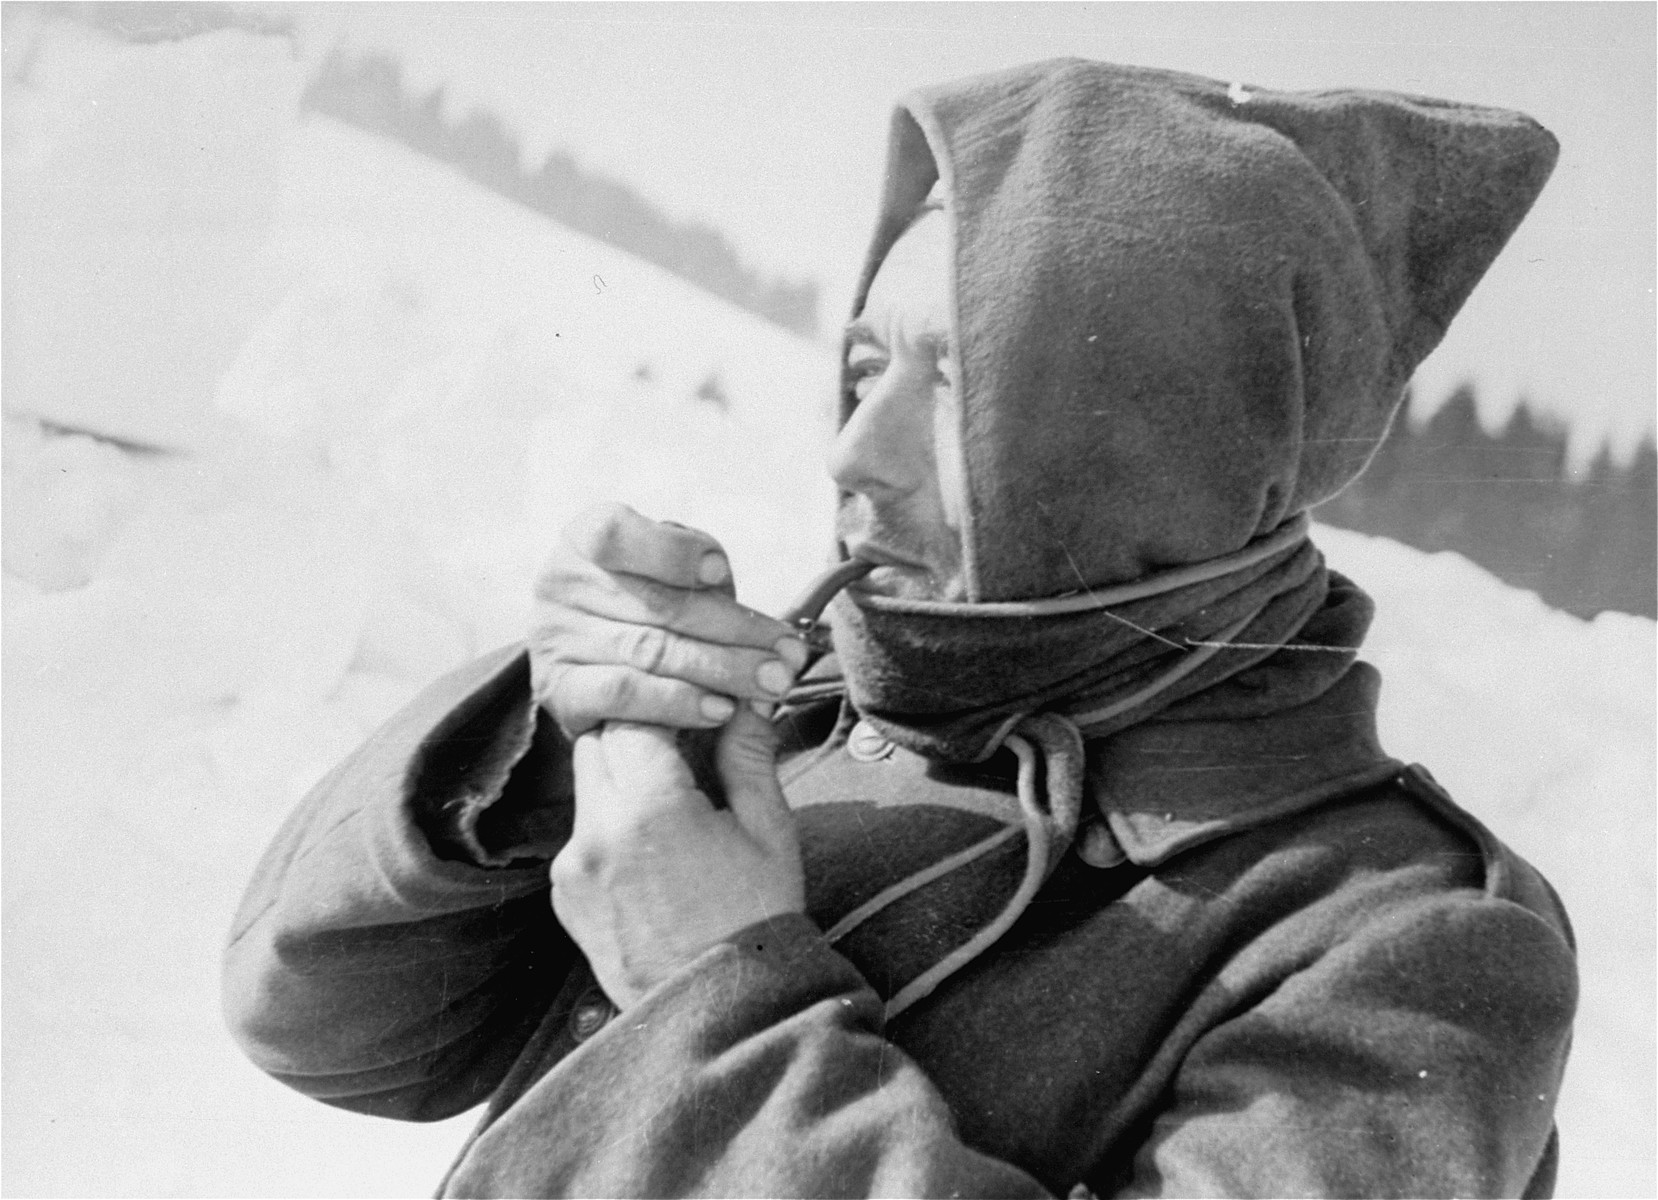 A Jewish conscript in Company 108/57 of the Hungarian Labor Service smoking during a break from work.